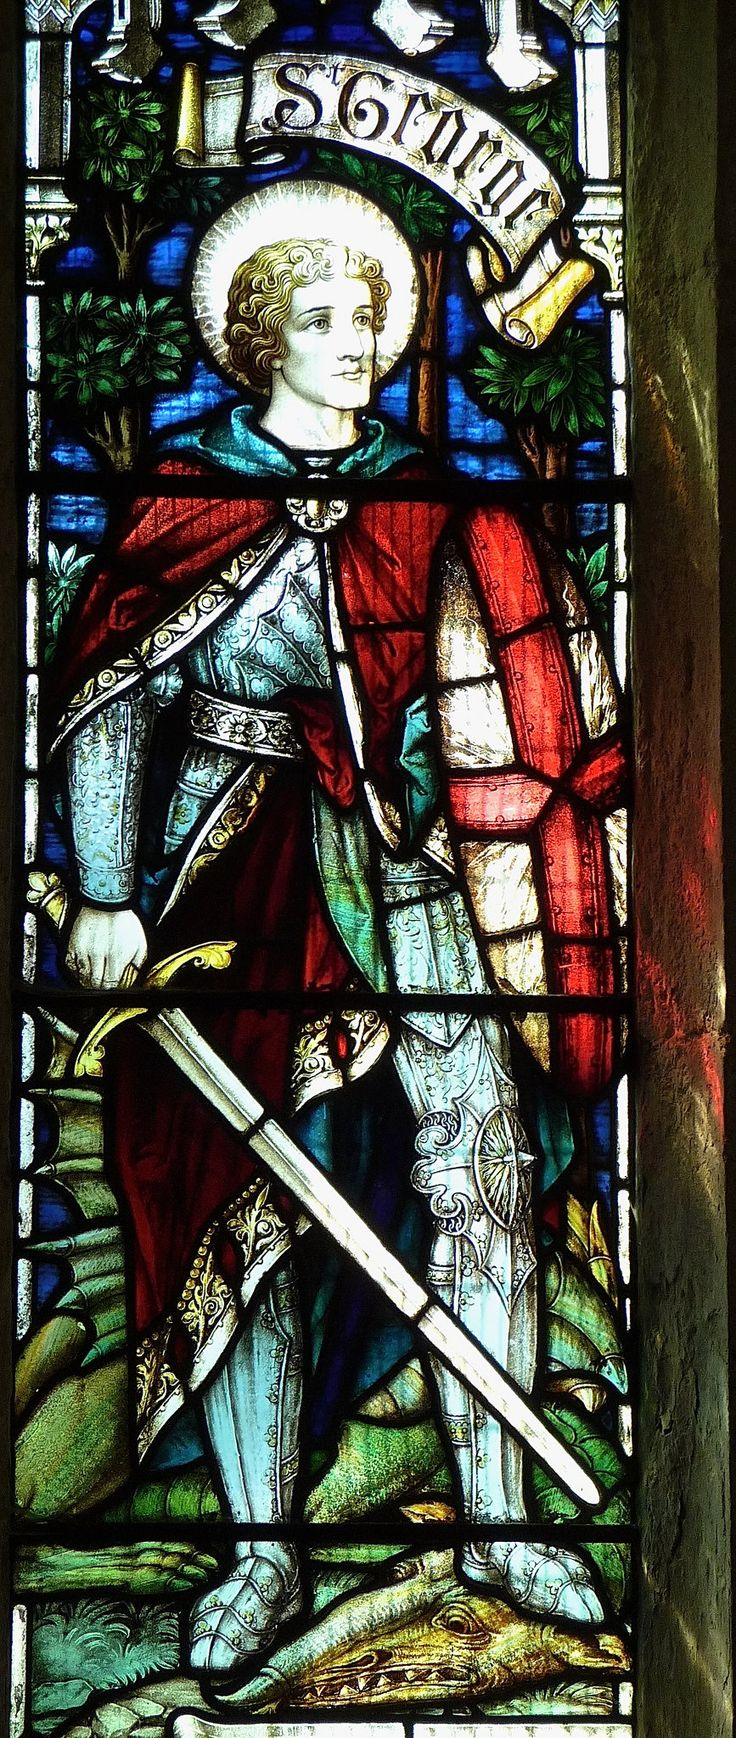 https://flic.kr/p/Jw7GCX | Tilney, All Saints - Stained Glass |  In the south aisle is found a window in memory of Gerald Watson Failes, Captain in the Norfolk Regiment, who was killed in 1918 aged 24.  An angel is flanked on the left by St George, patron Saint of England, and on the right by St Martin, Patron of English armourists.  Detail: St George and the dragon.